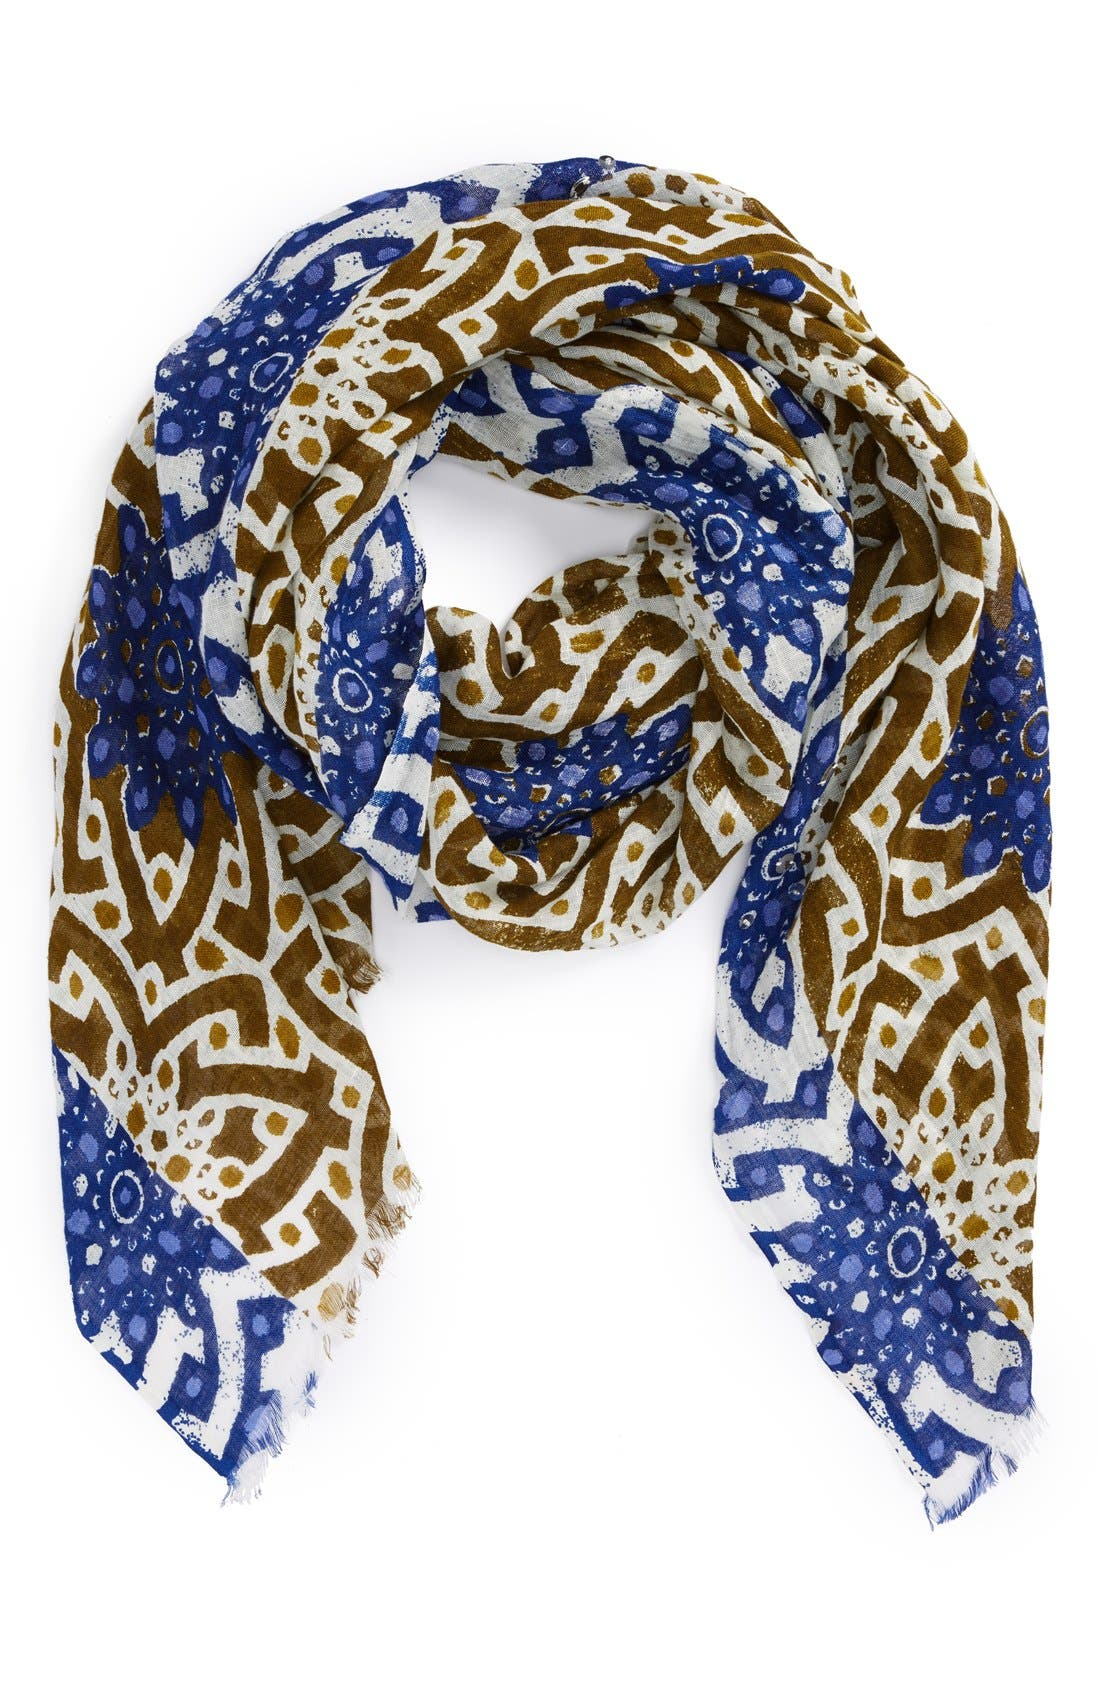 Main Image - Tory Burch 'Orion' Embellished Scarf